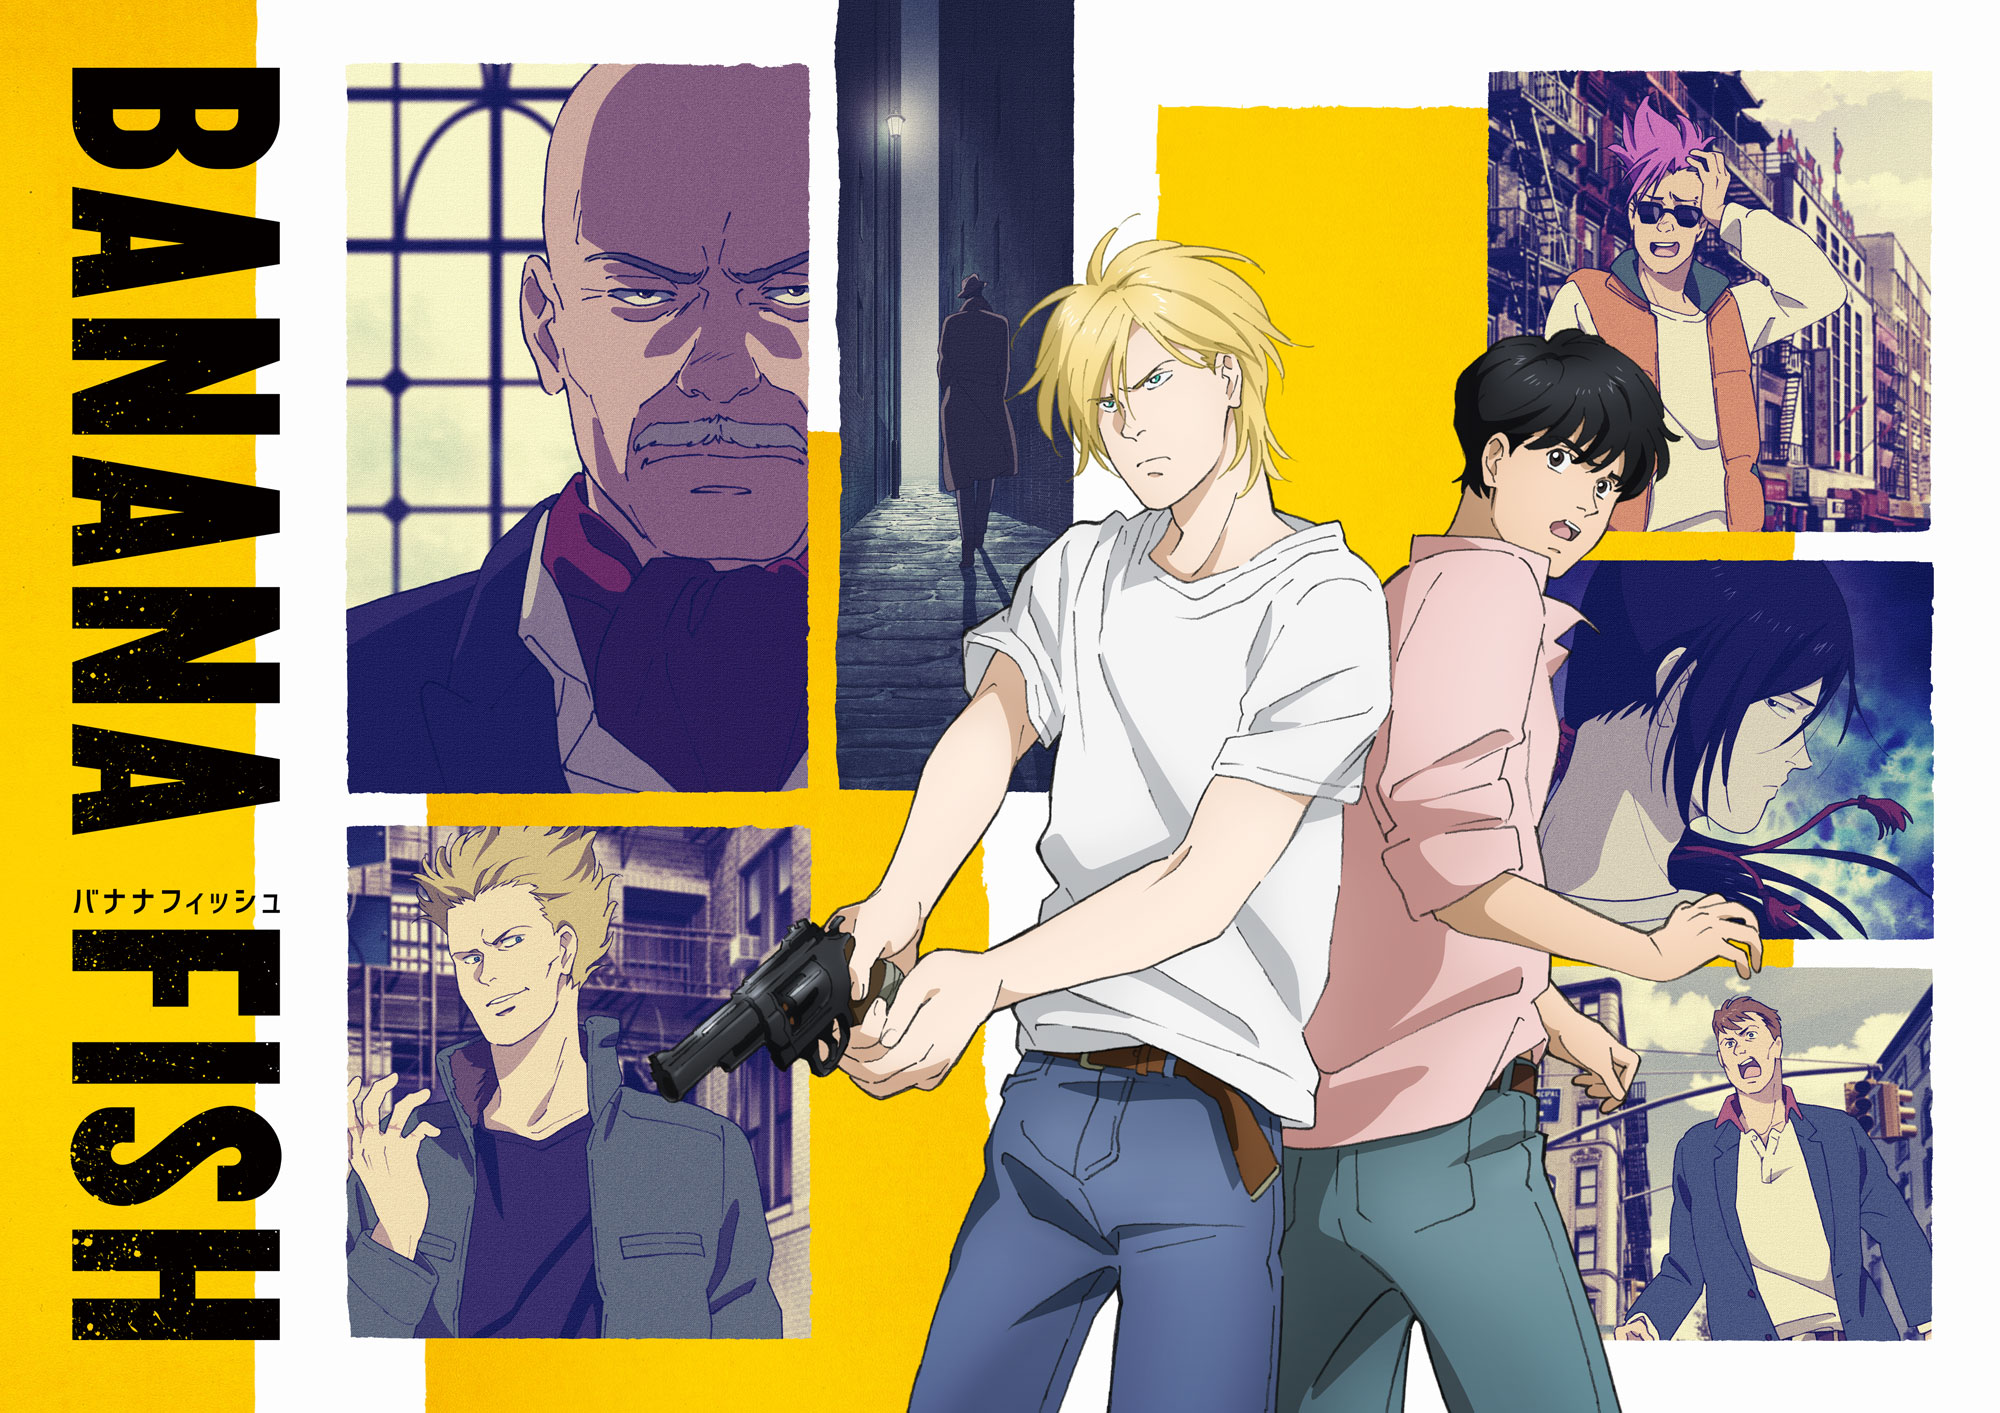 [MANGA/ANIME] Banana Fish Y67r